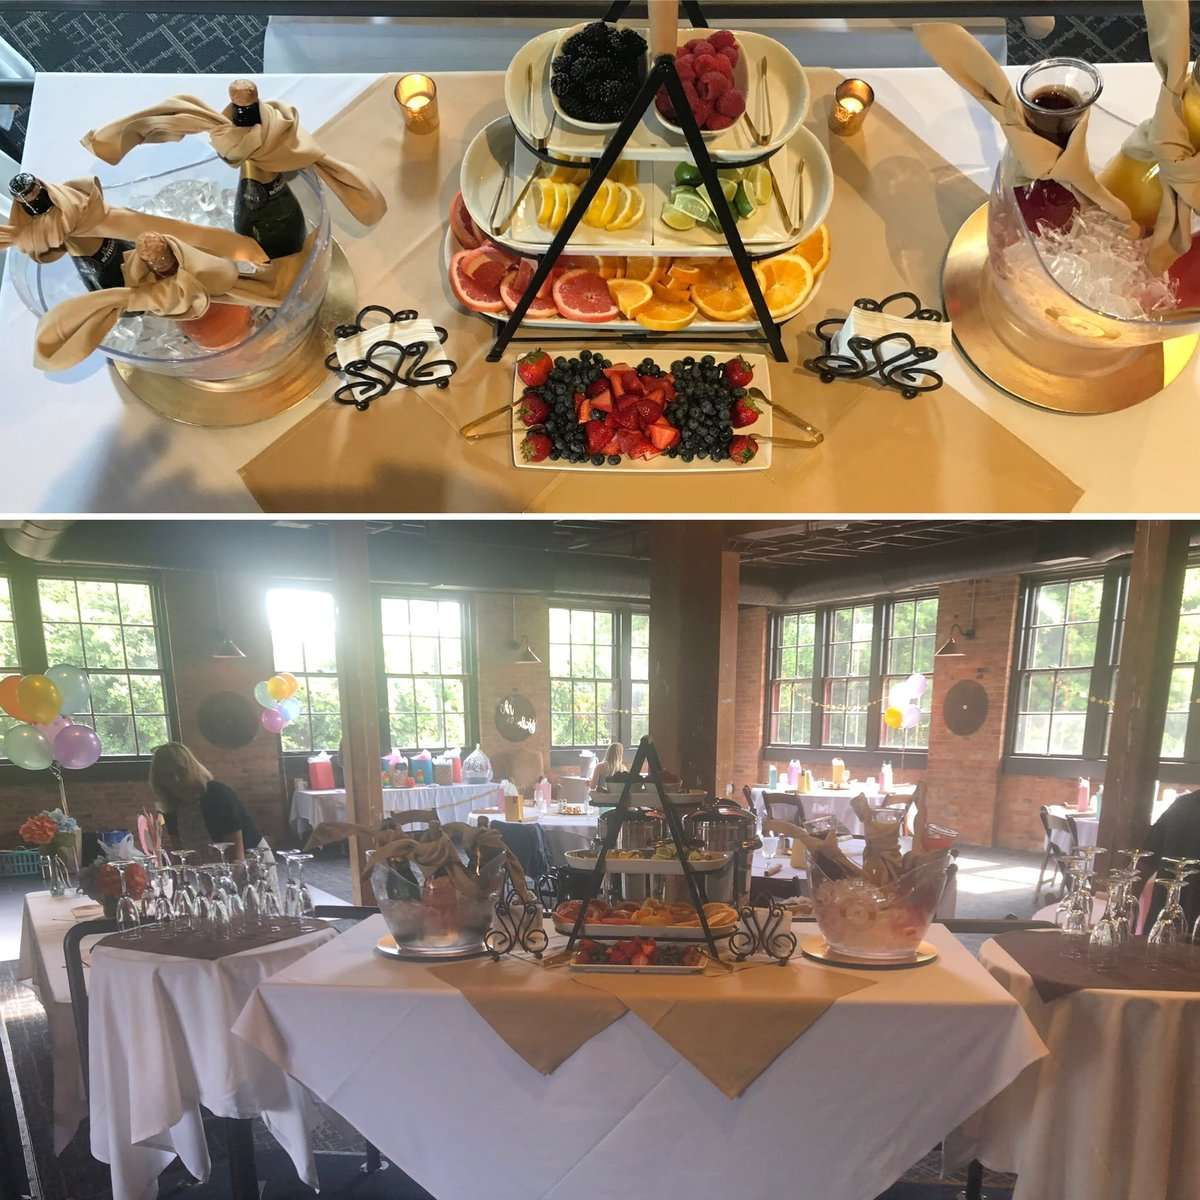 Mimosa Bar For Baby/Bridal Showers